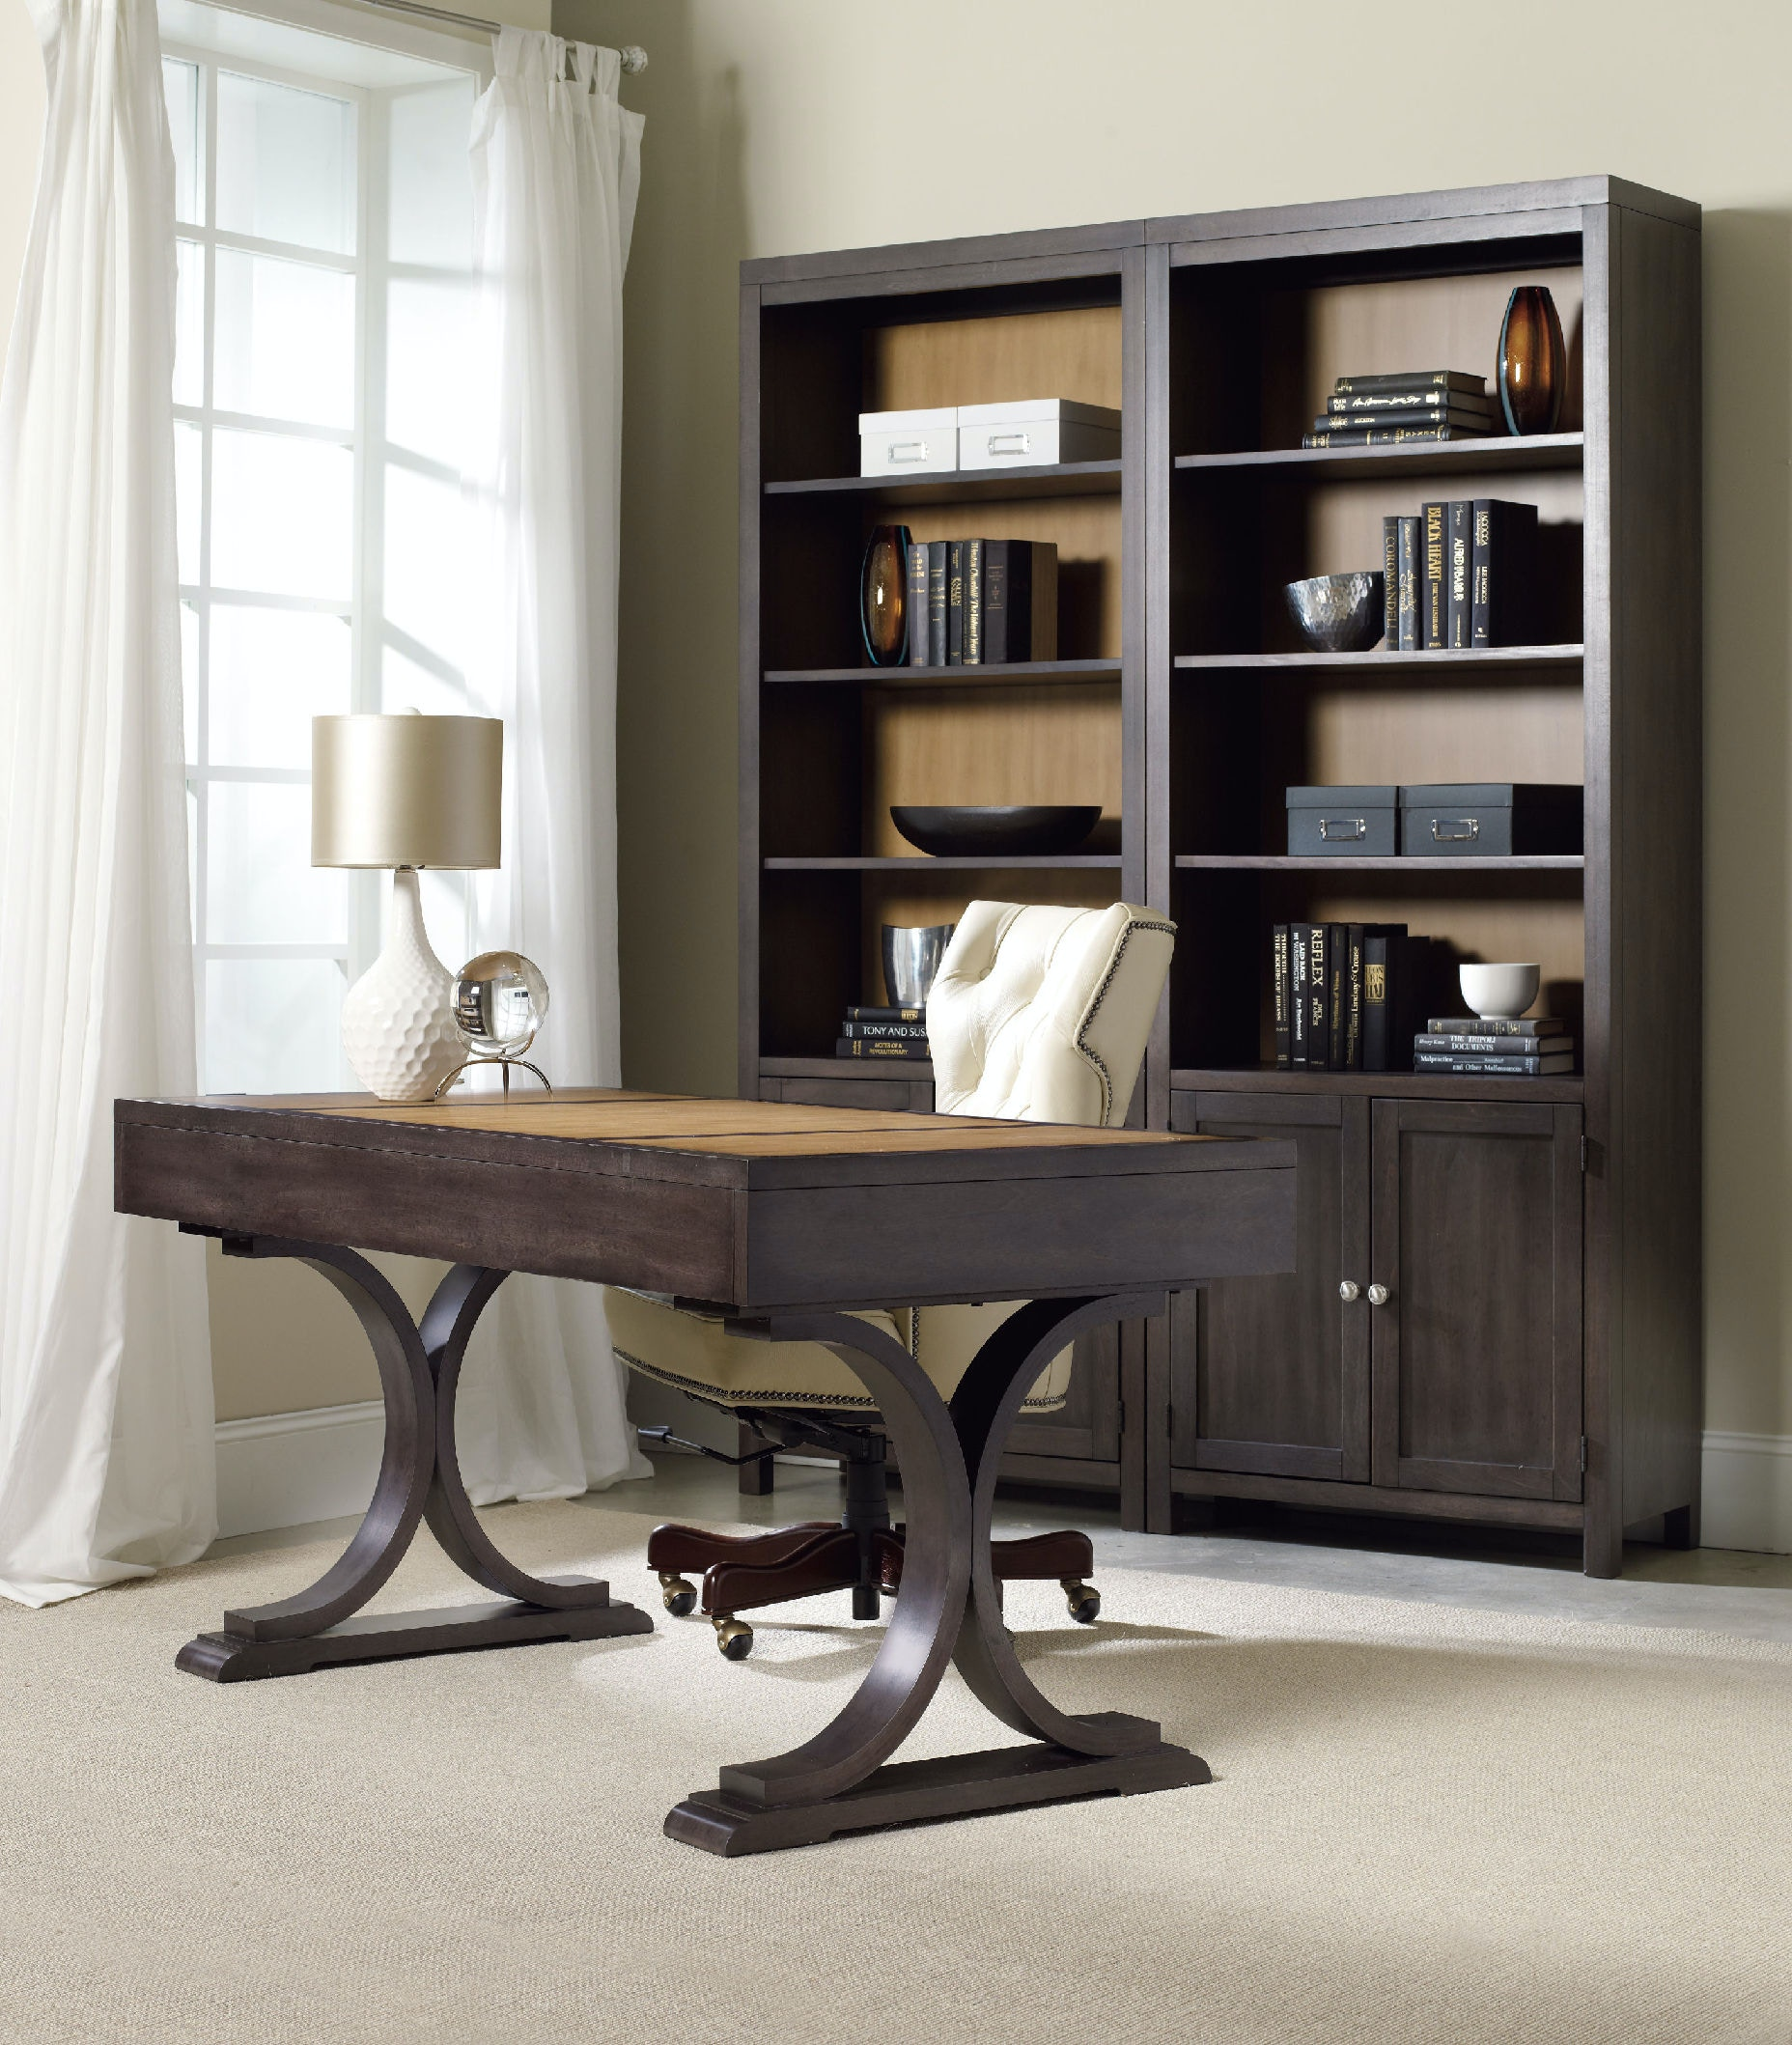 Hooker Furniture Home Office South Park Bunching Bookcase ...